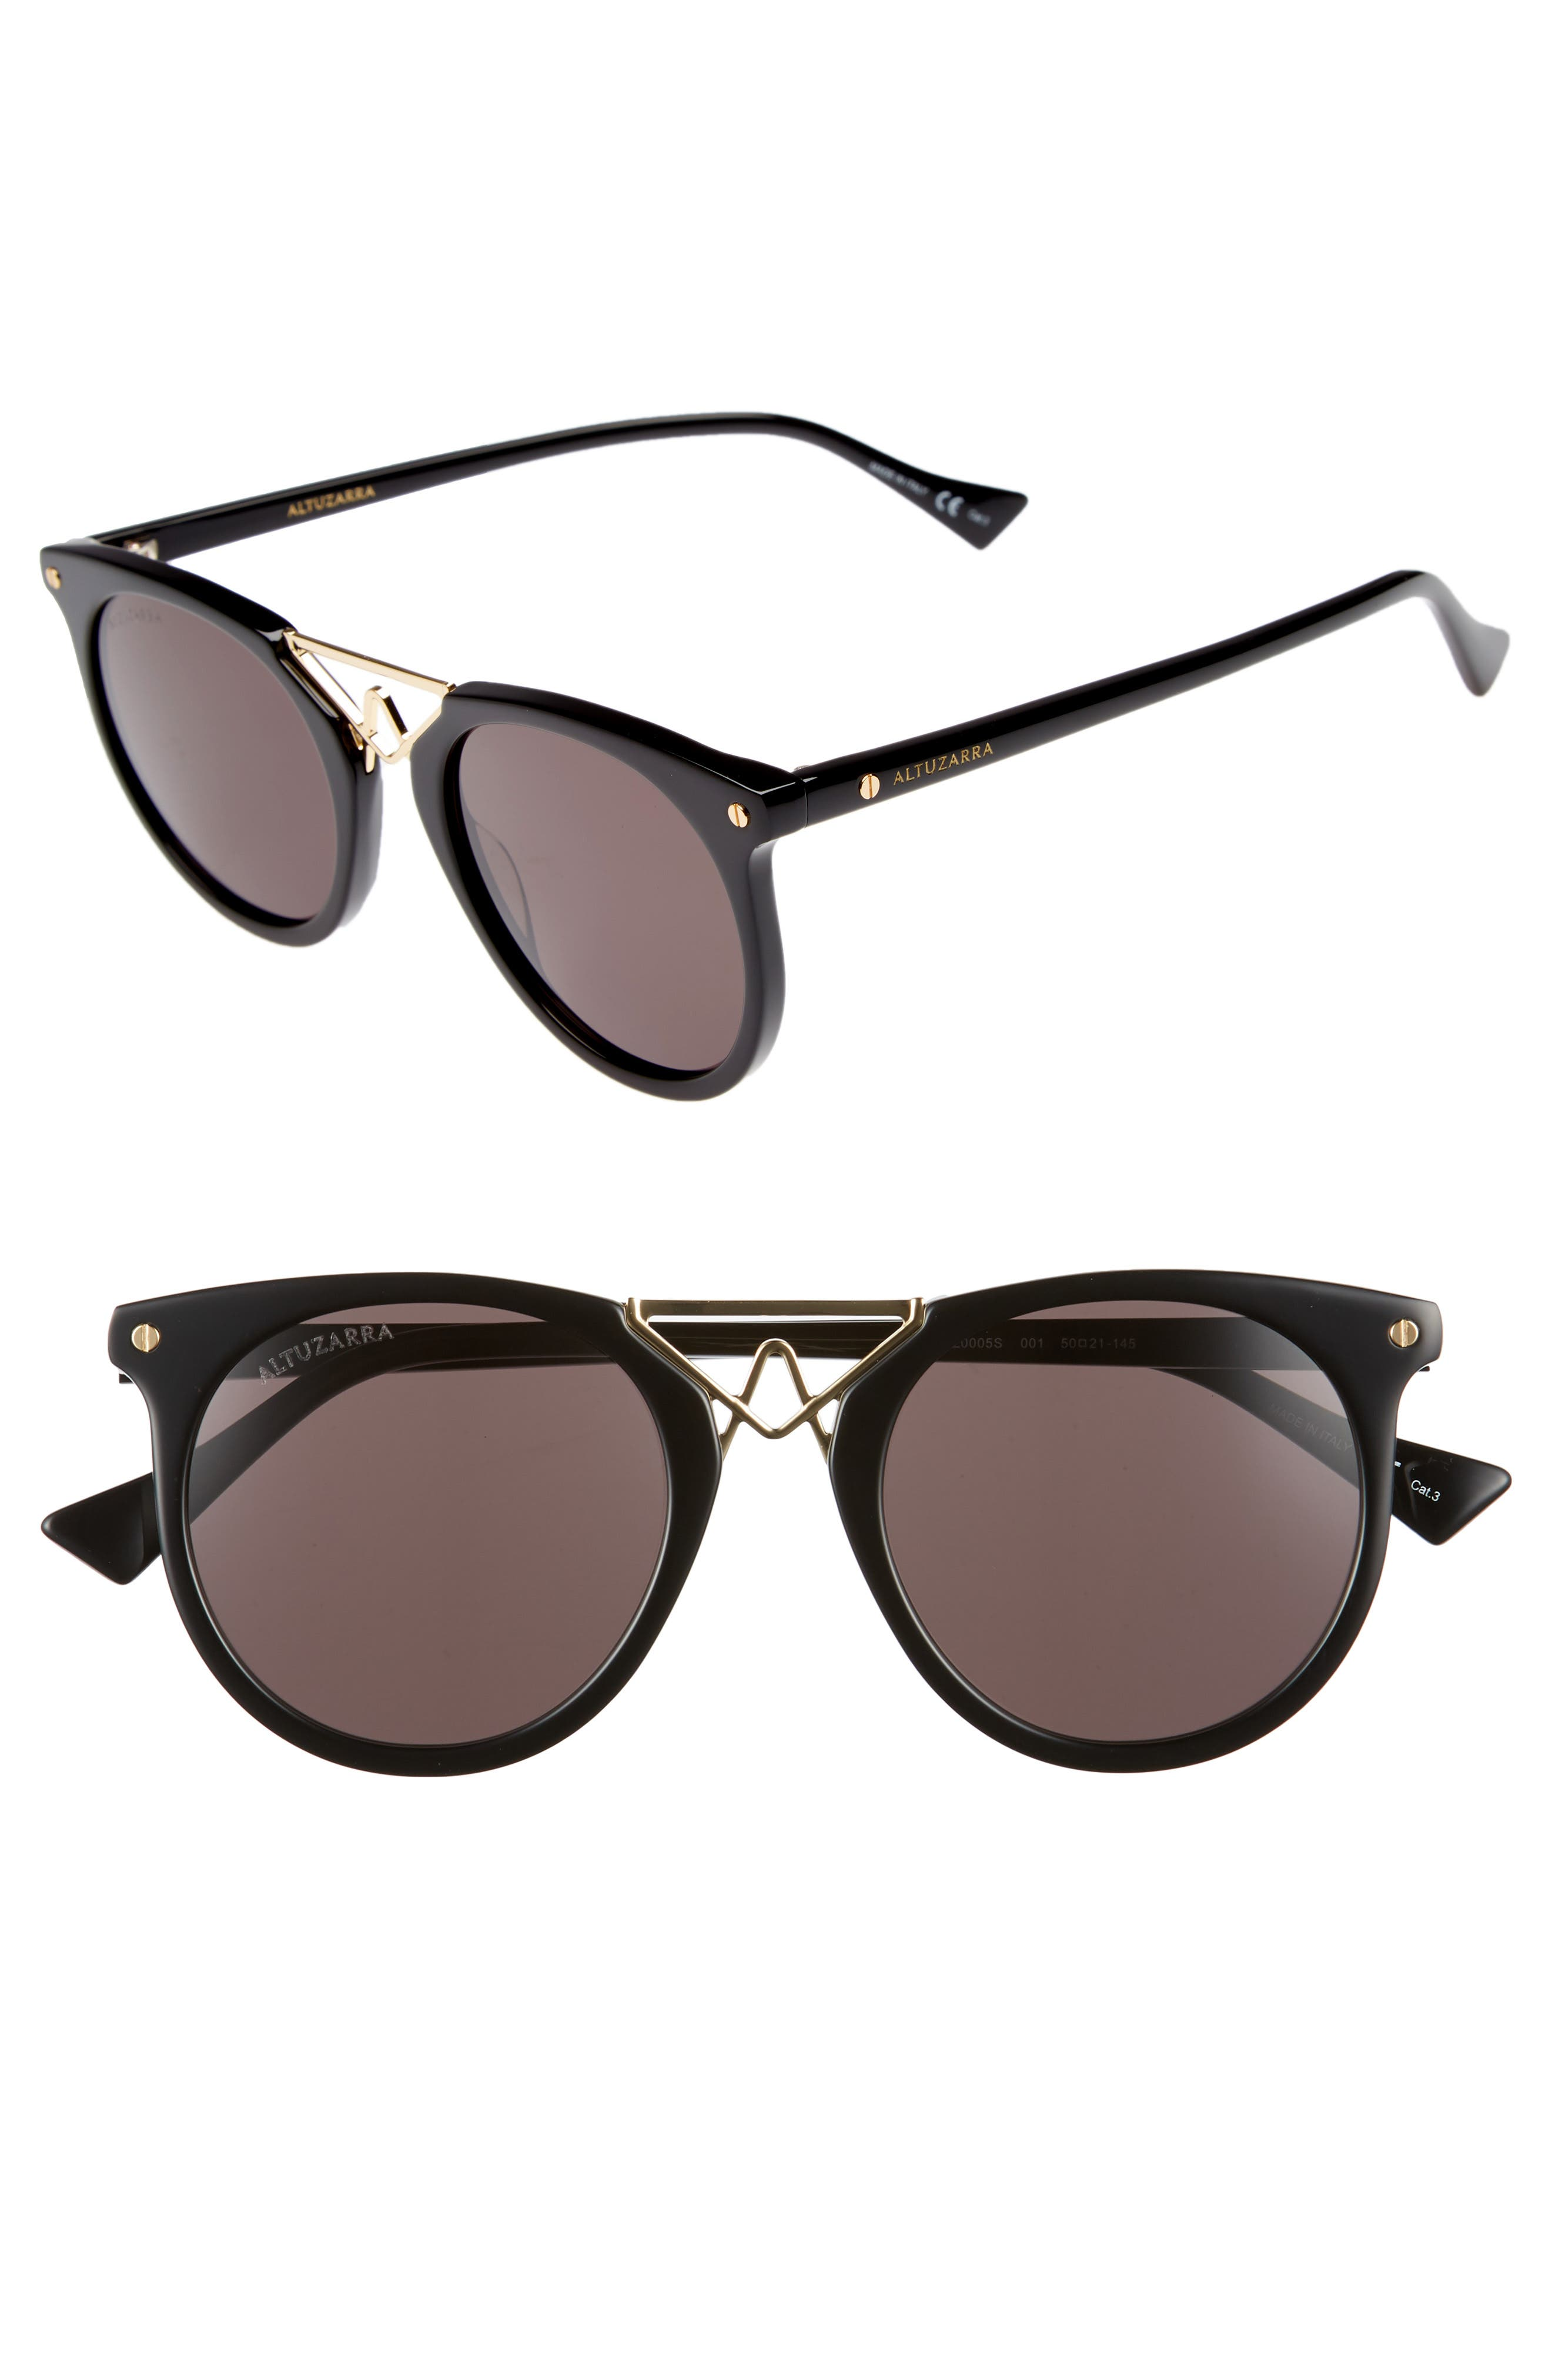 50mm Round Sunglasses,                         Main,                         color, BLACK/ GOLD